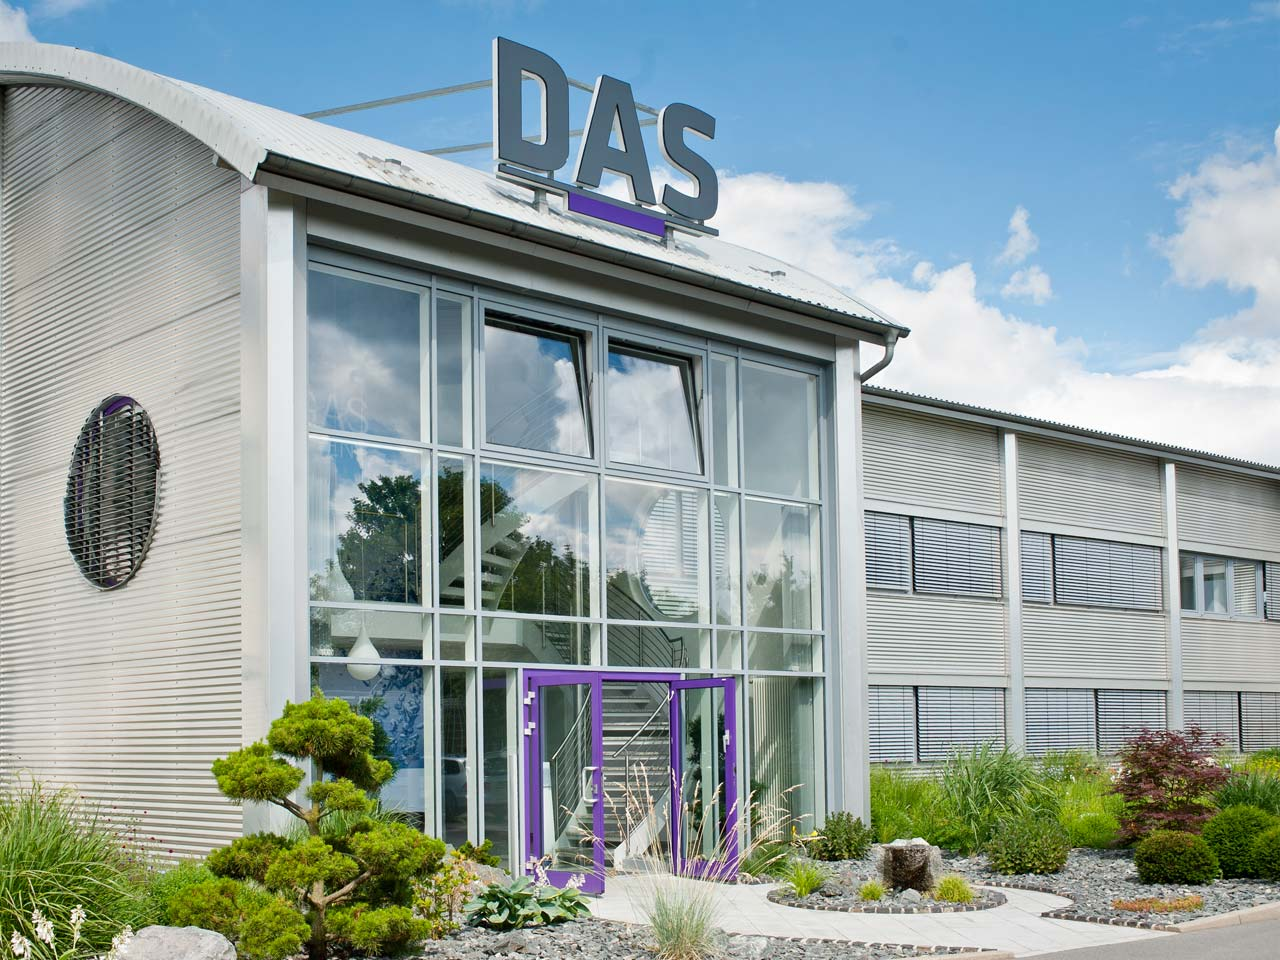 DAS Headquarter in Dresden